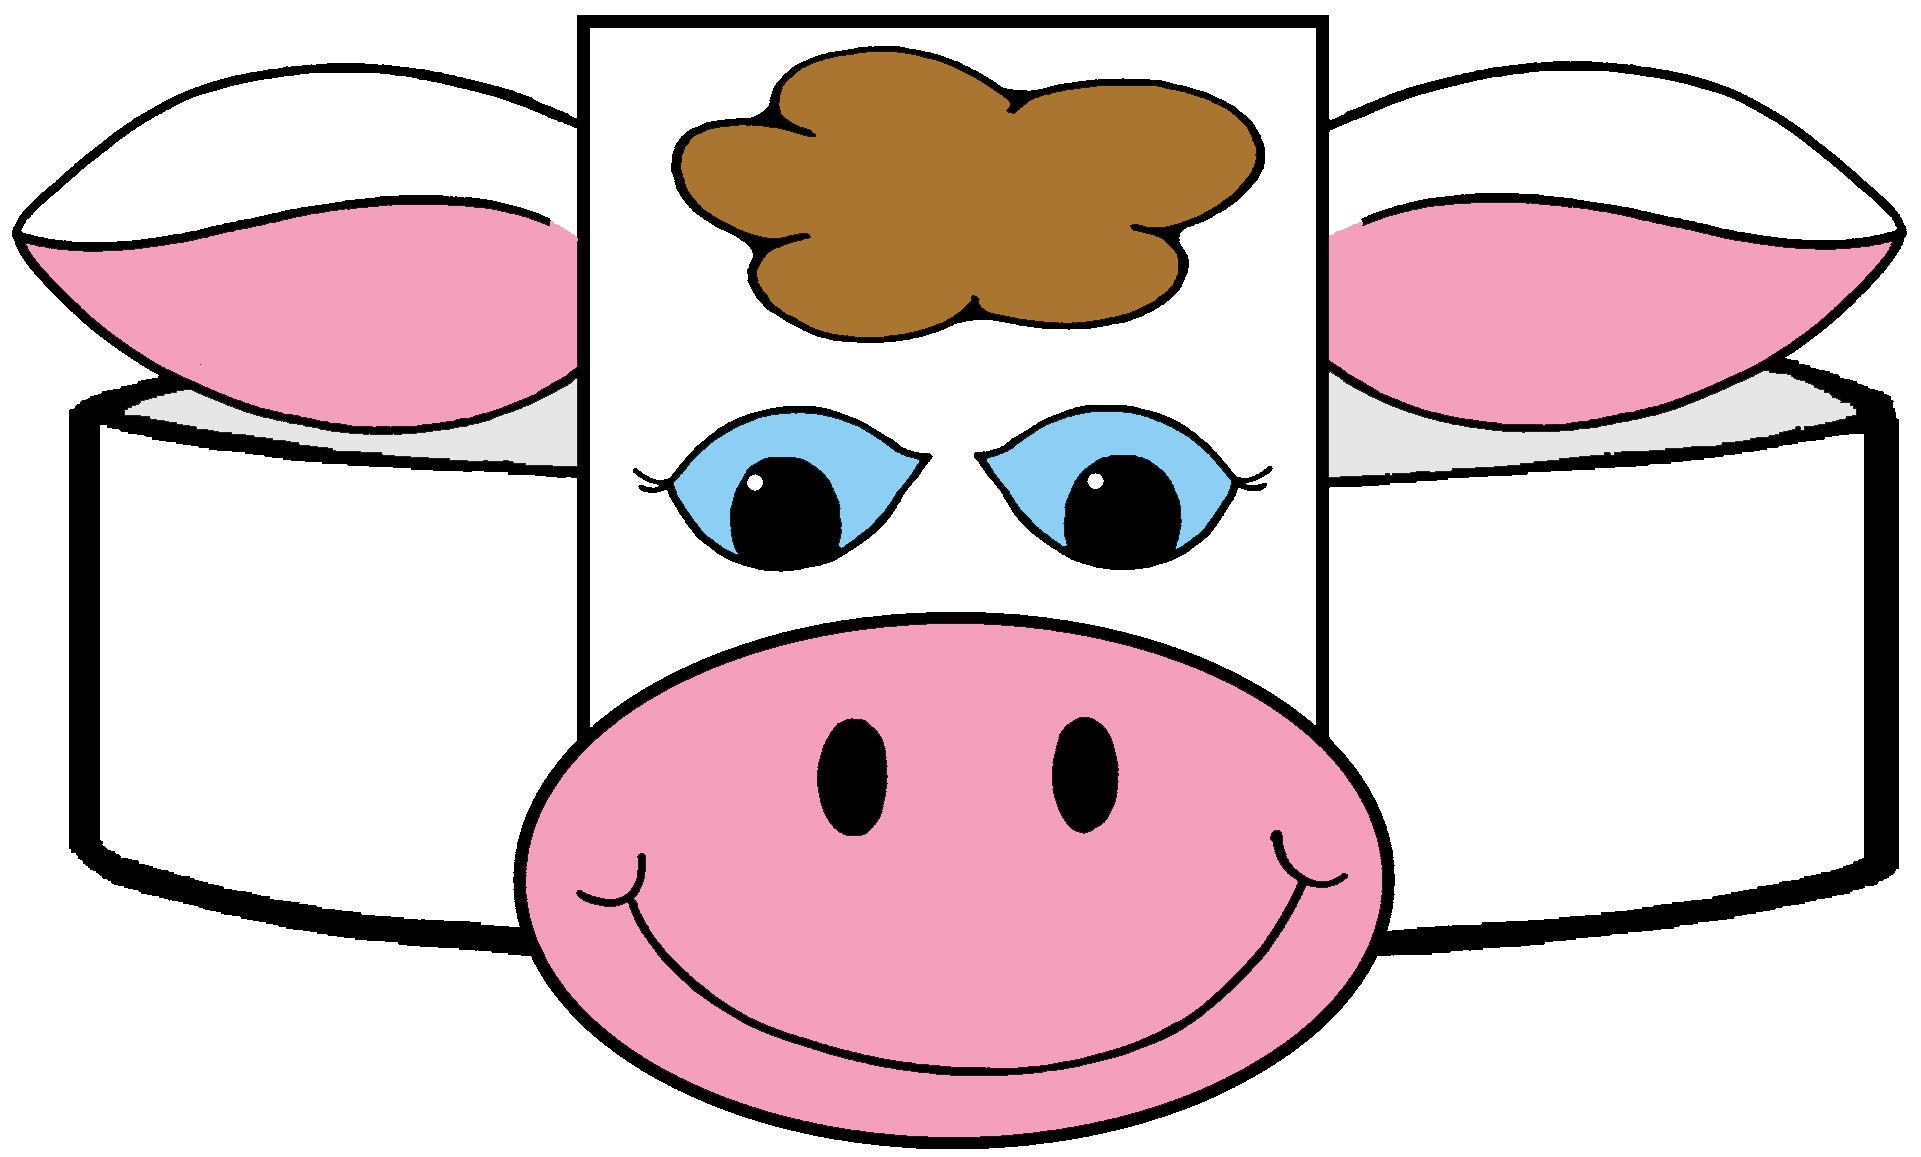 Cow Hat - Single Craft for 1 child - Twosteps | Reading | Pinterest ...